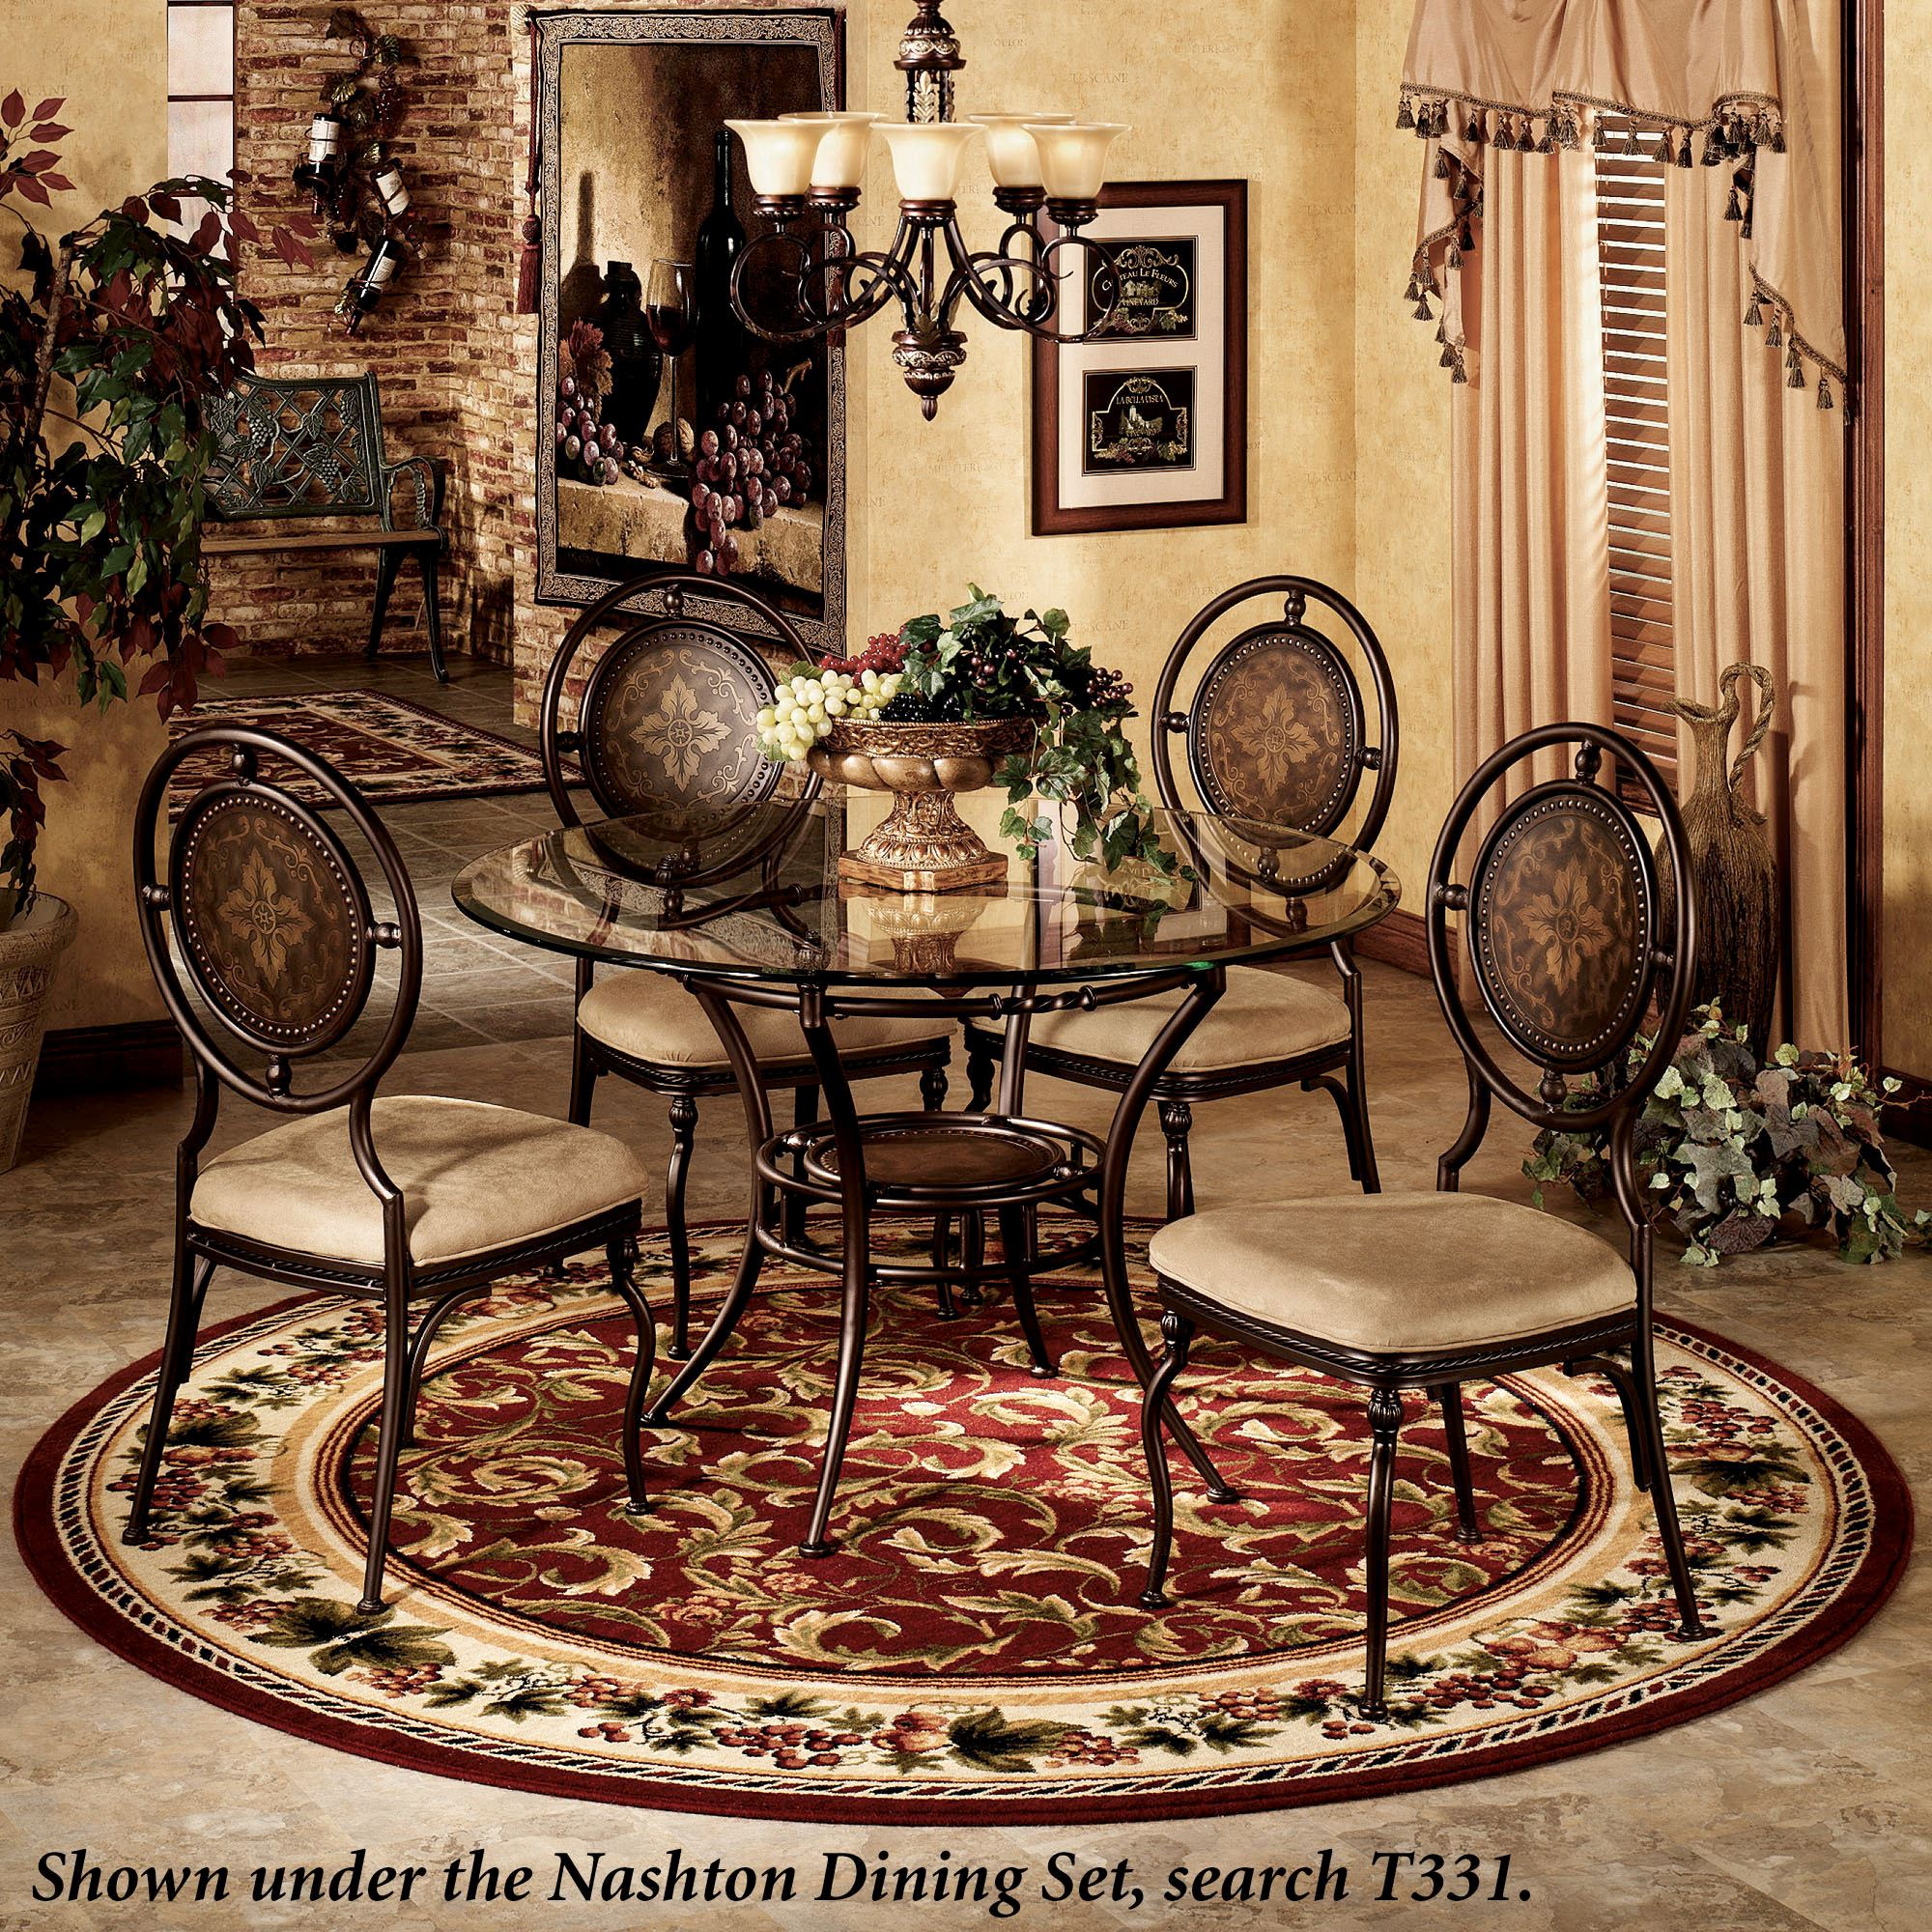 Kitchen Table On Rug: Inspiration Grapes And Acanthus Area Rugs